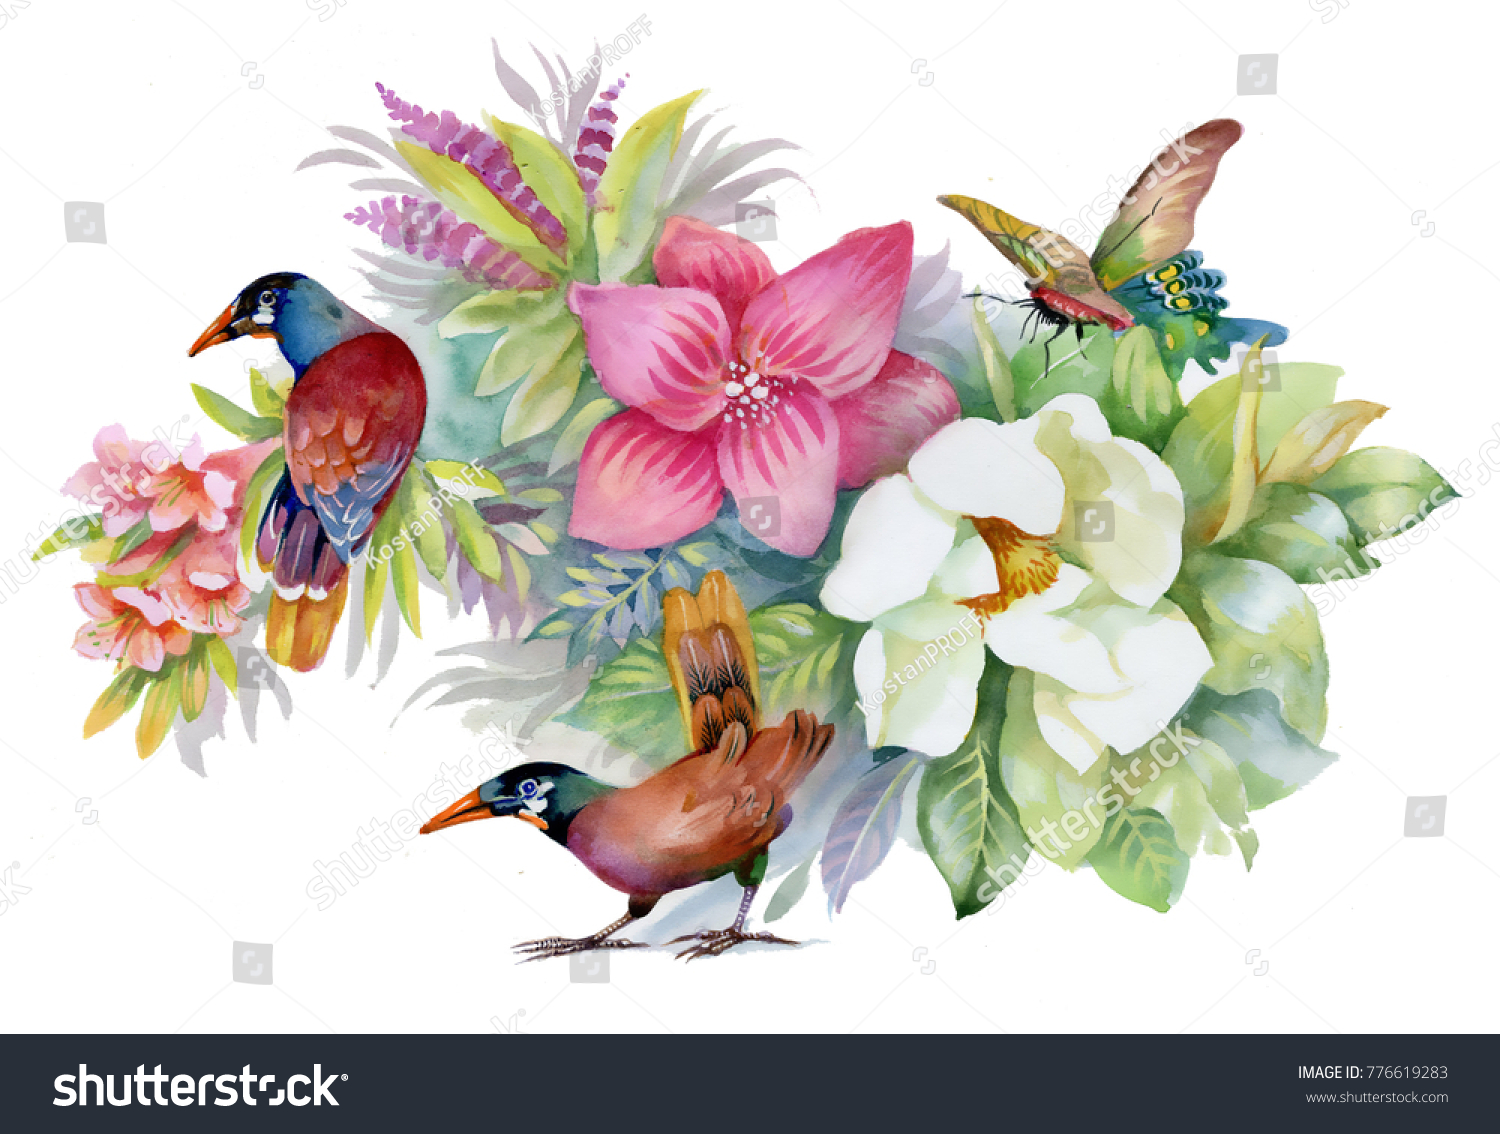 Watercolor Hand Drawn Beautiful Flowers Birds Stock Illustration